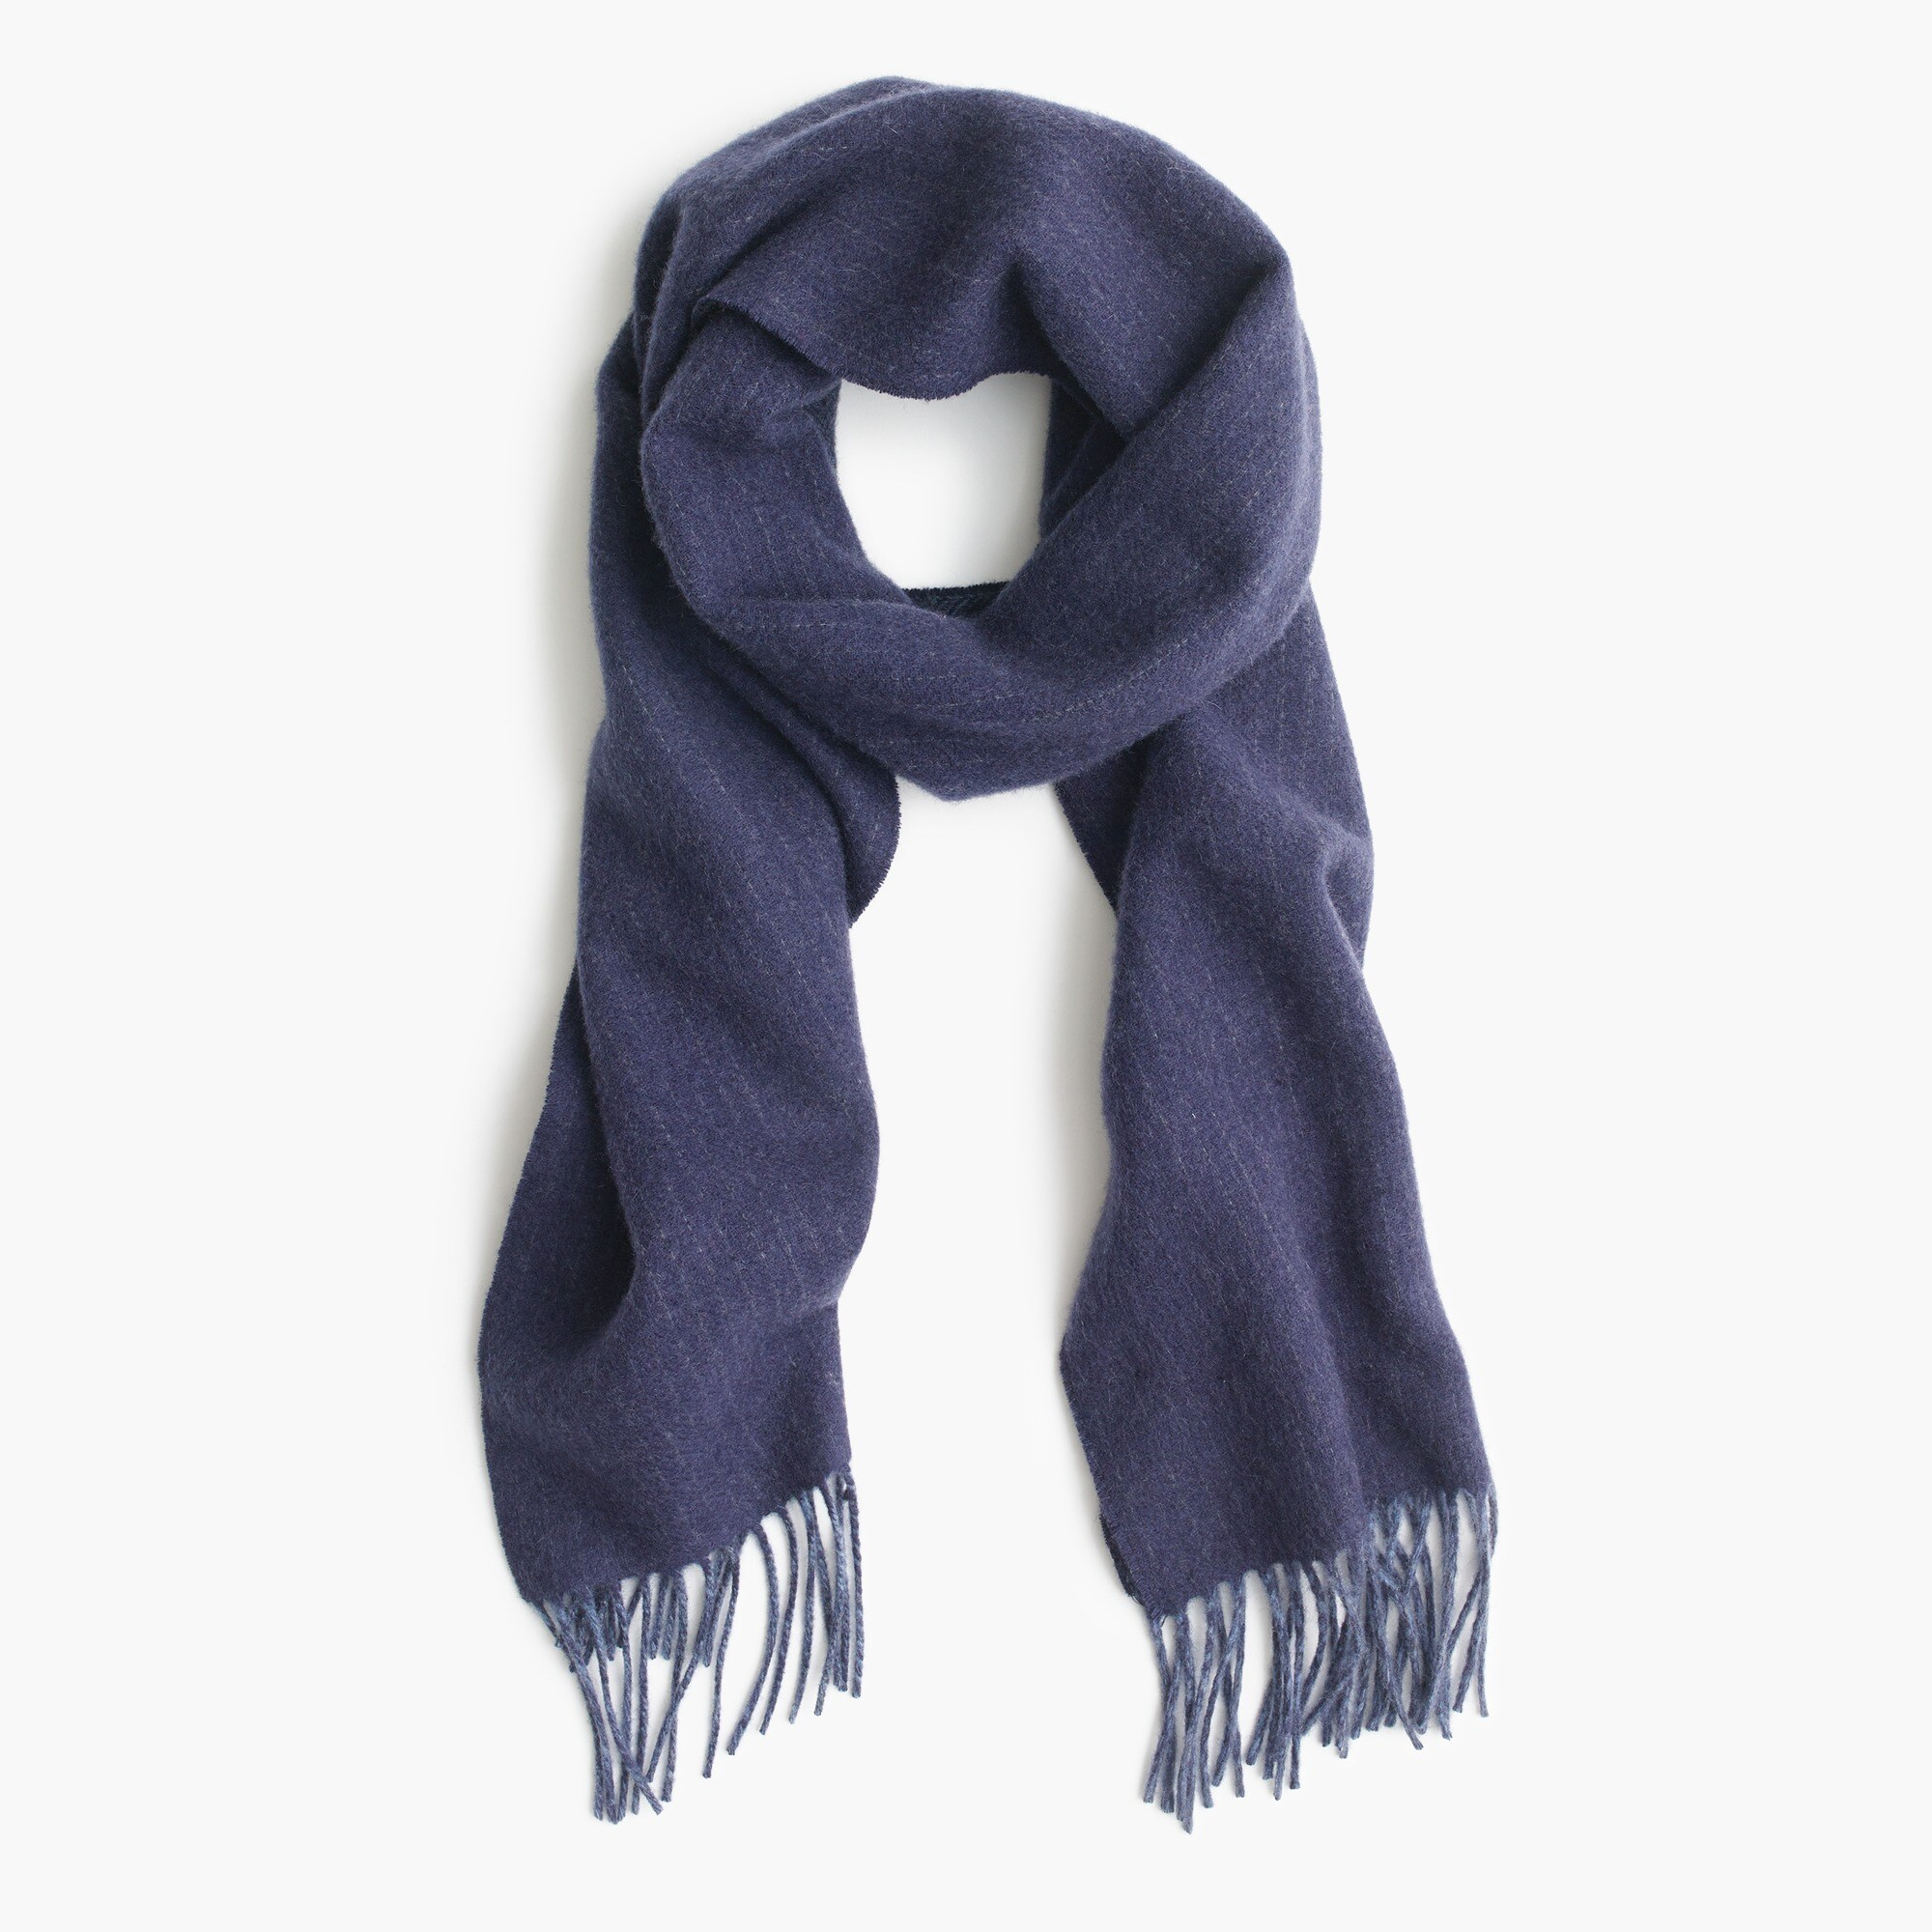 Dual-patterned cashmere scarf